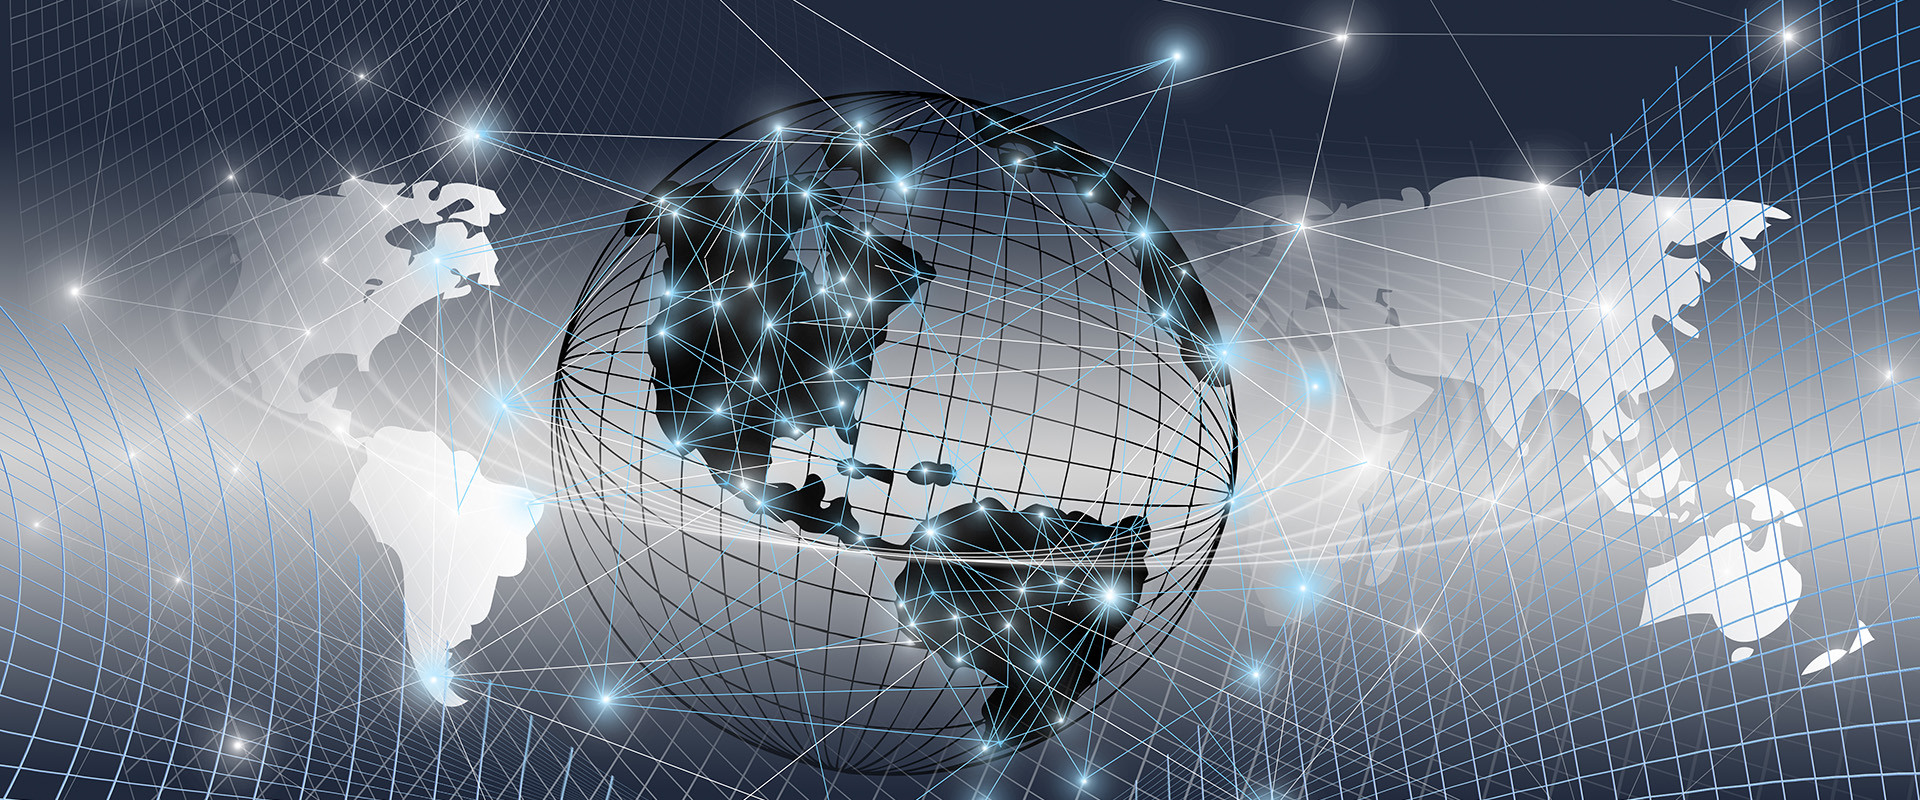 the global world with digital links and glowing connections